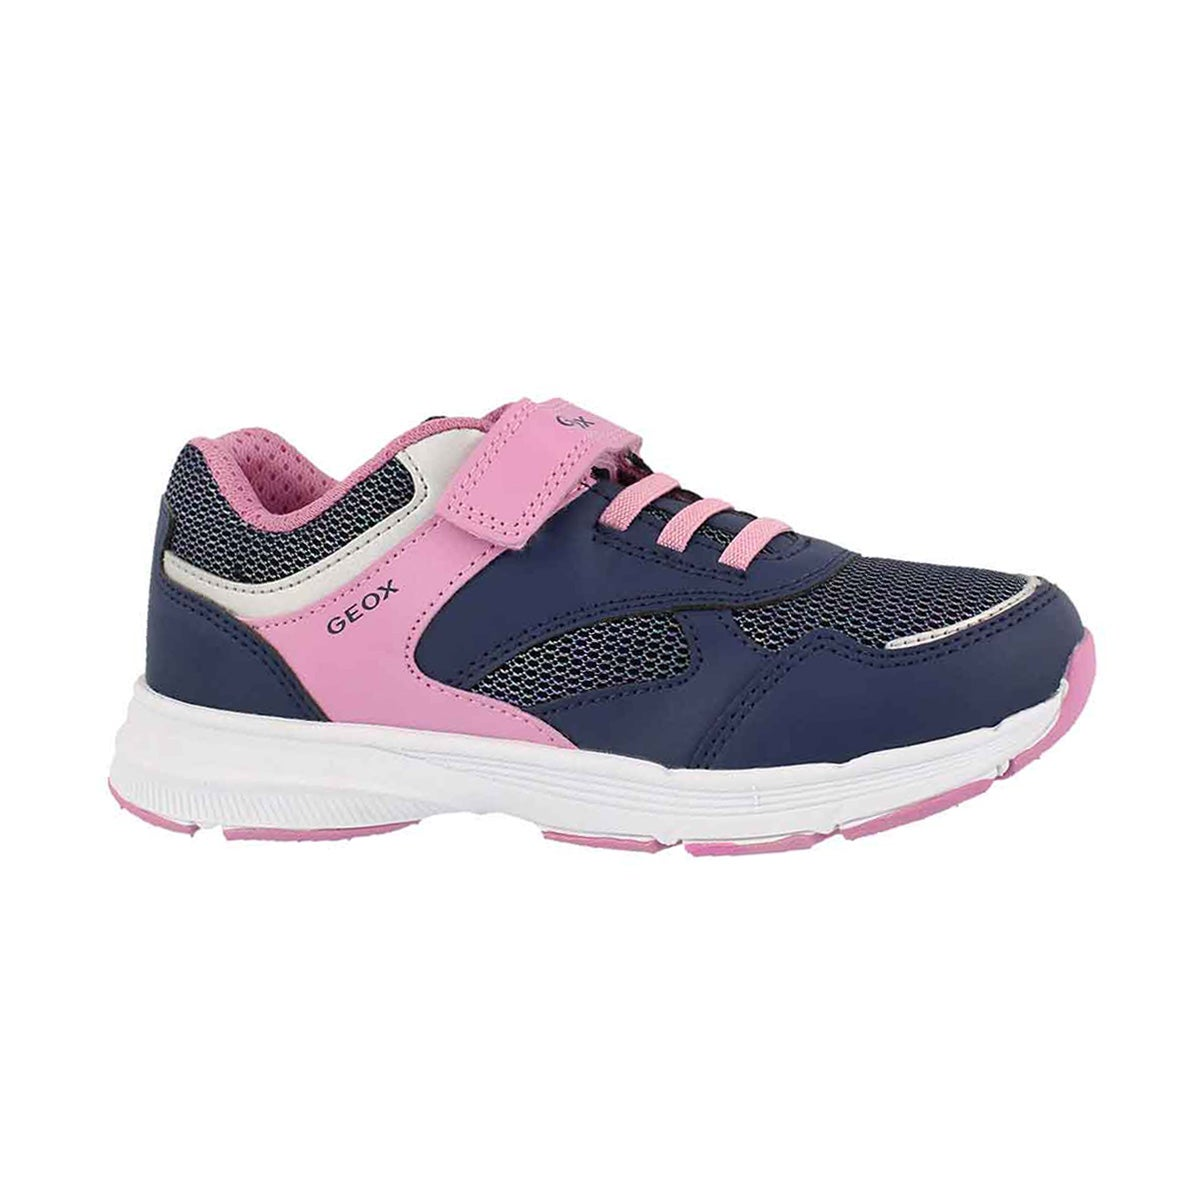 Girls' J HOSHIKO navy/pink sneakers